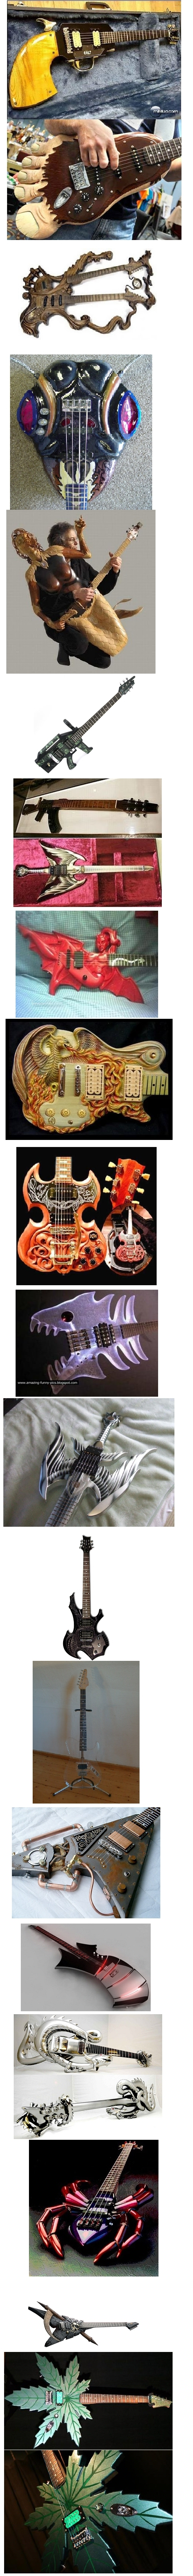 Crazy Custom Guitars Mod